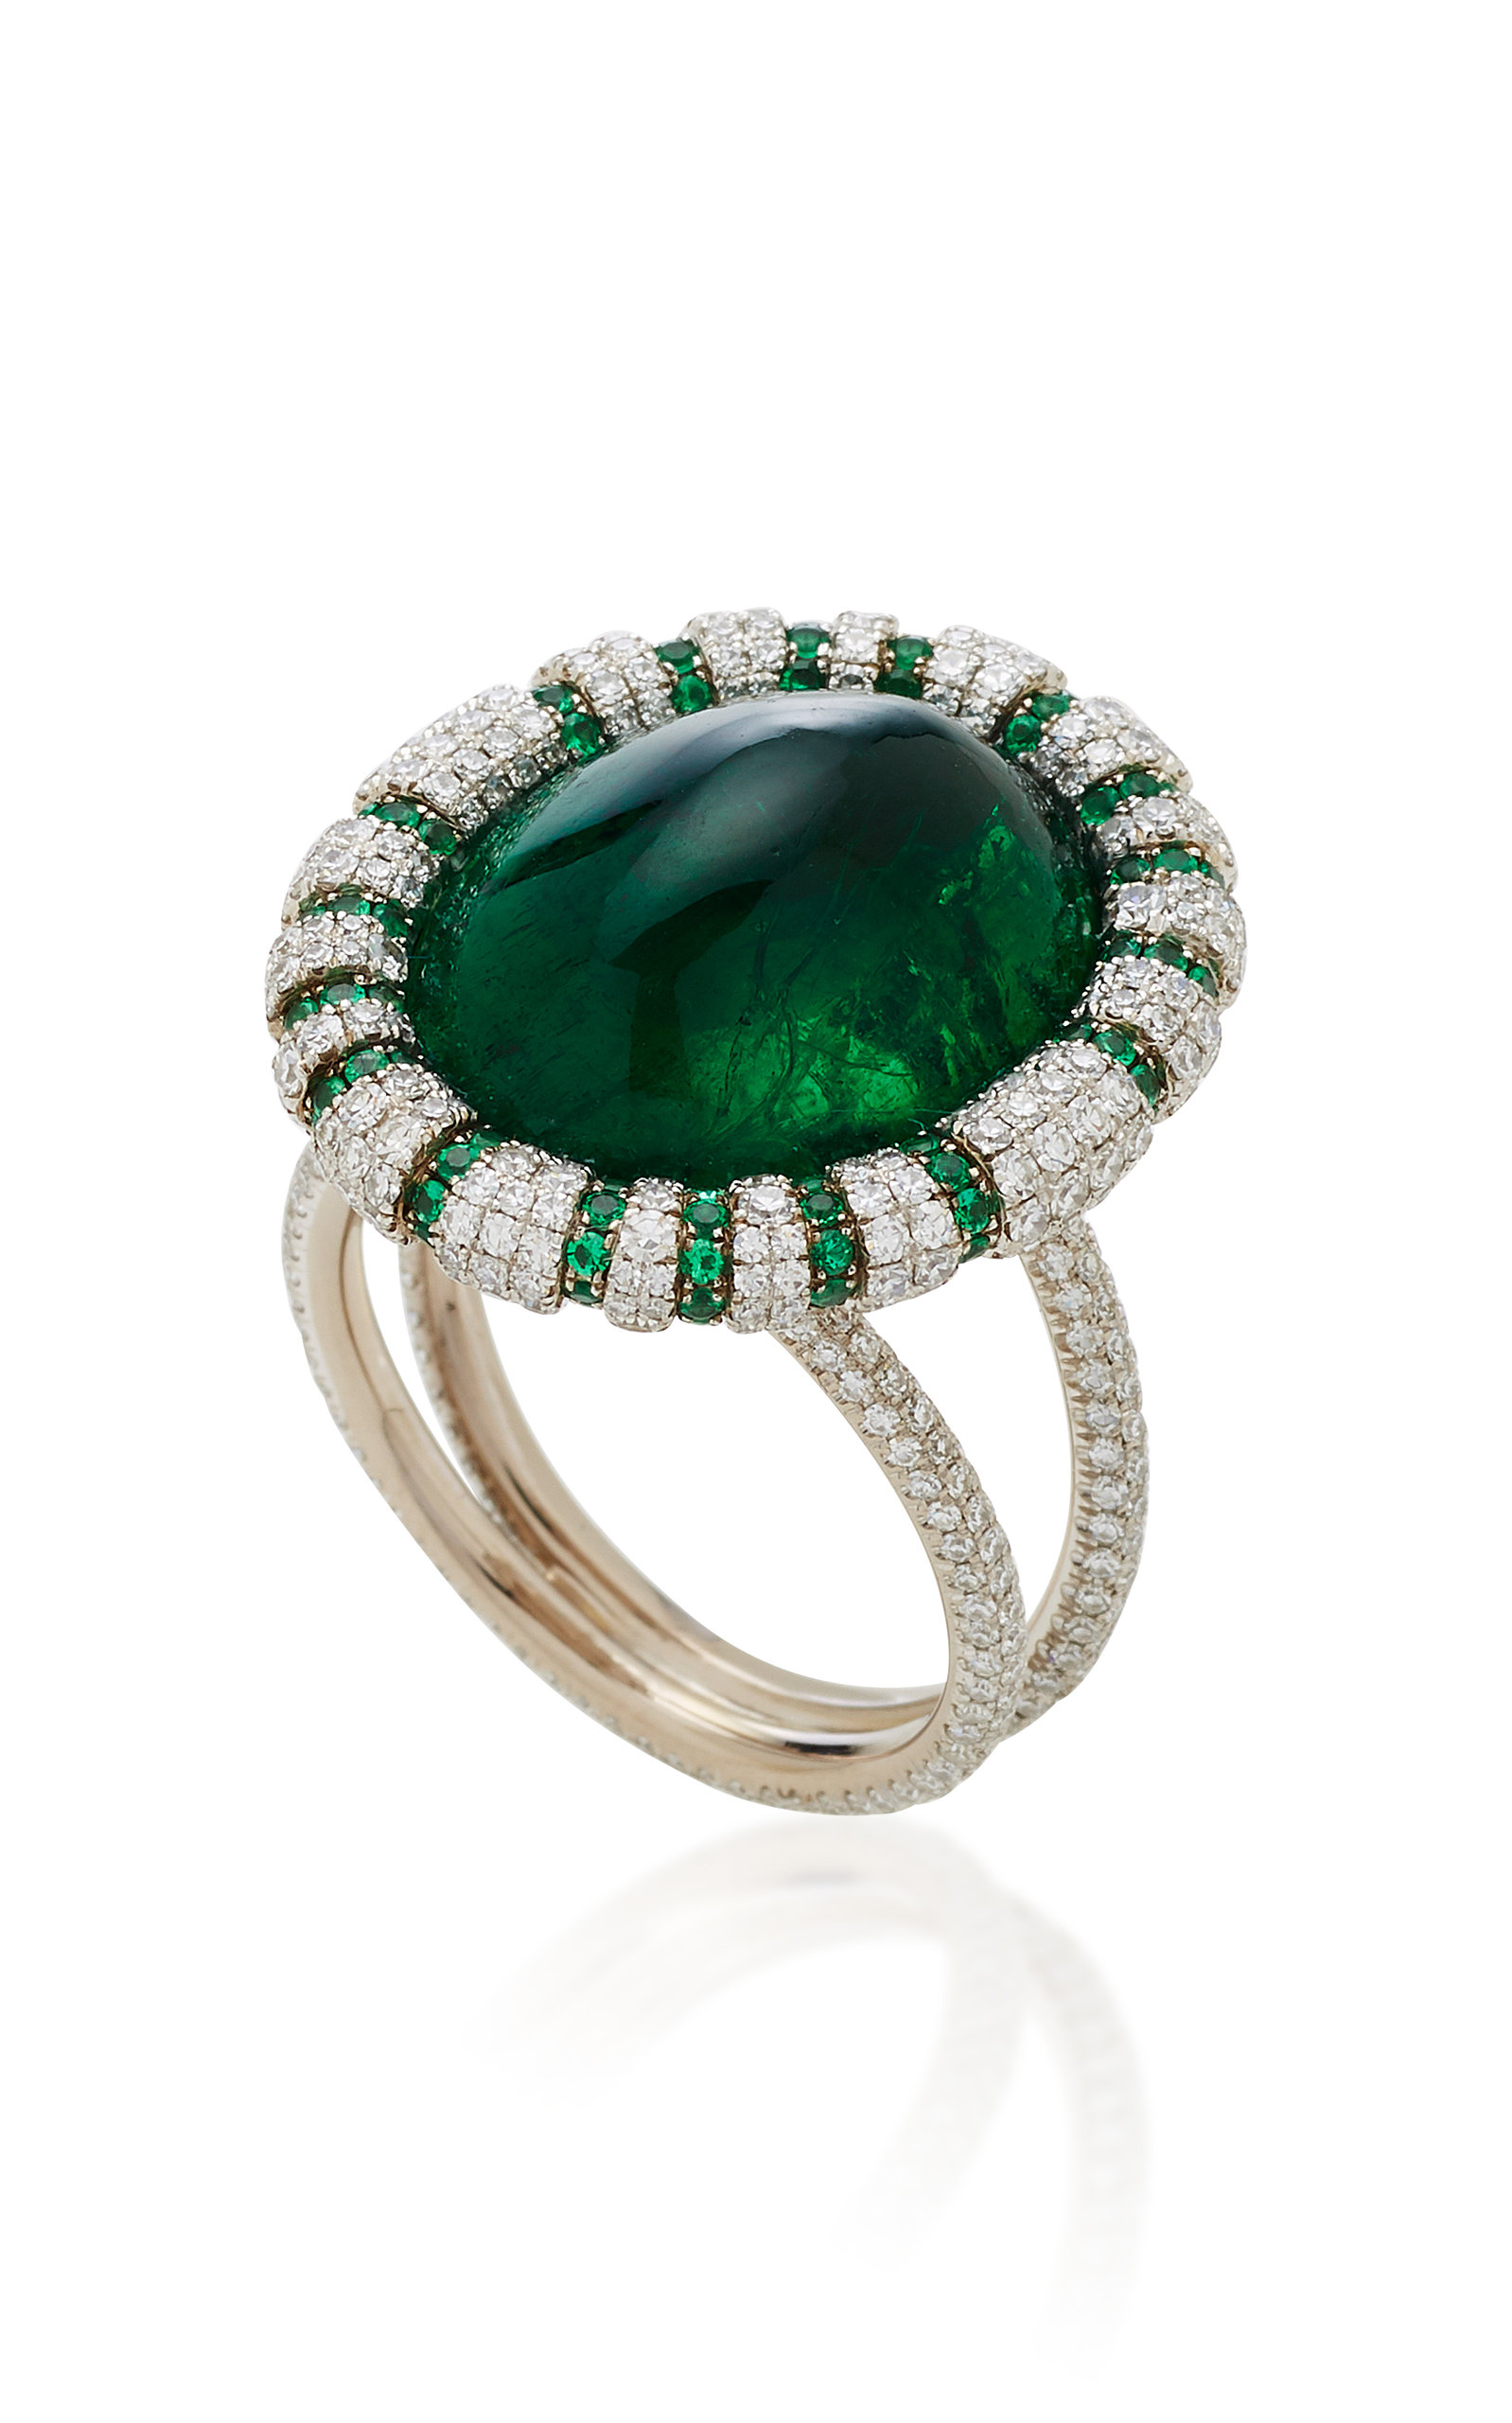 emerald gold rings ireland campbell engagement oval white diamond ring products jewellers dublin